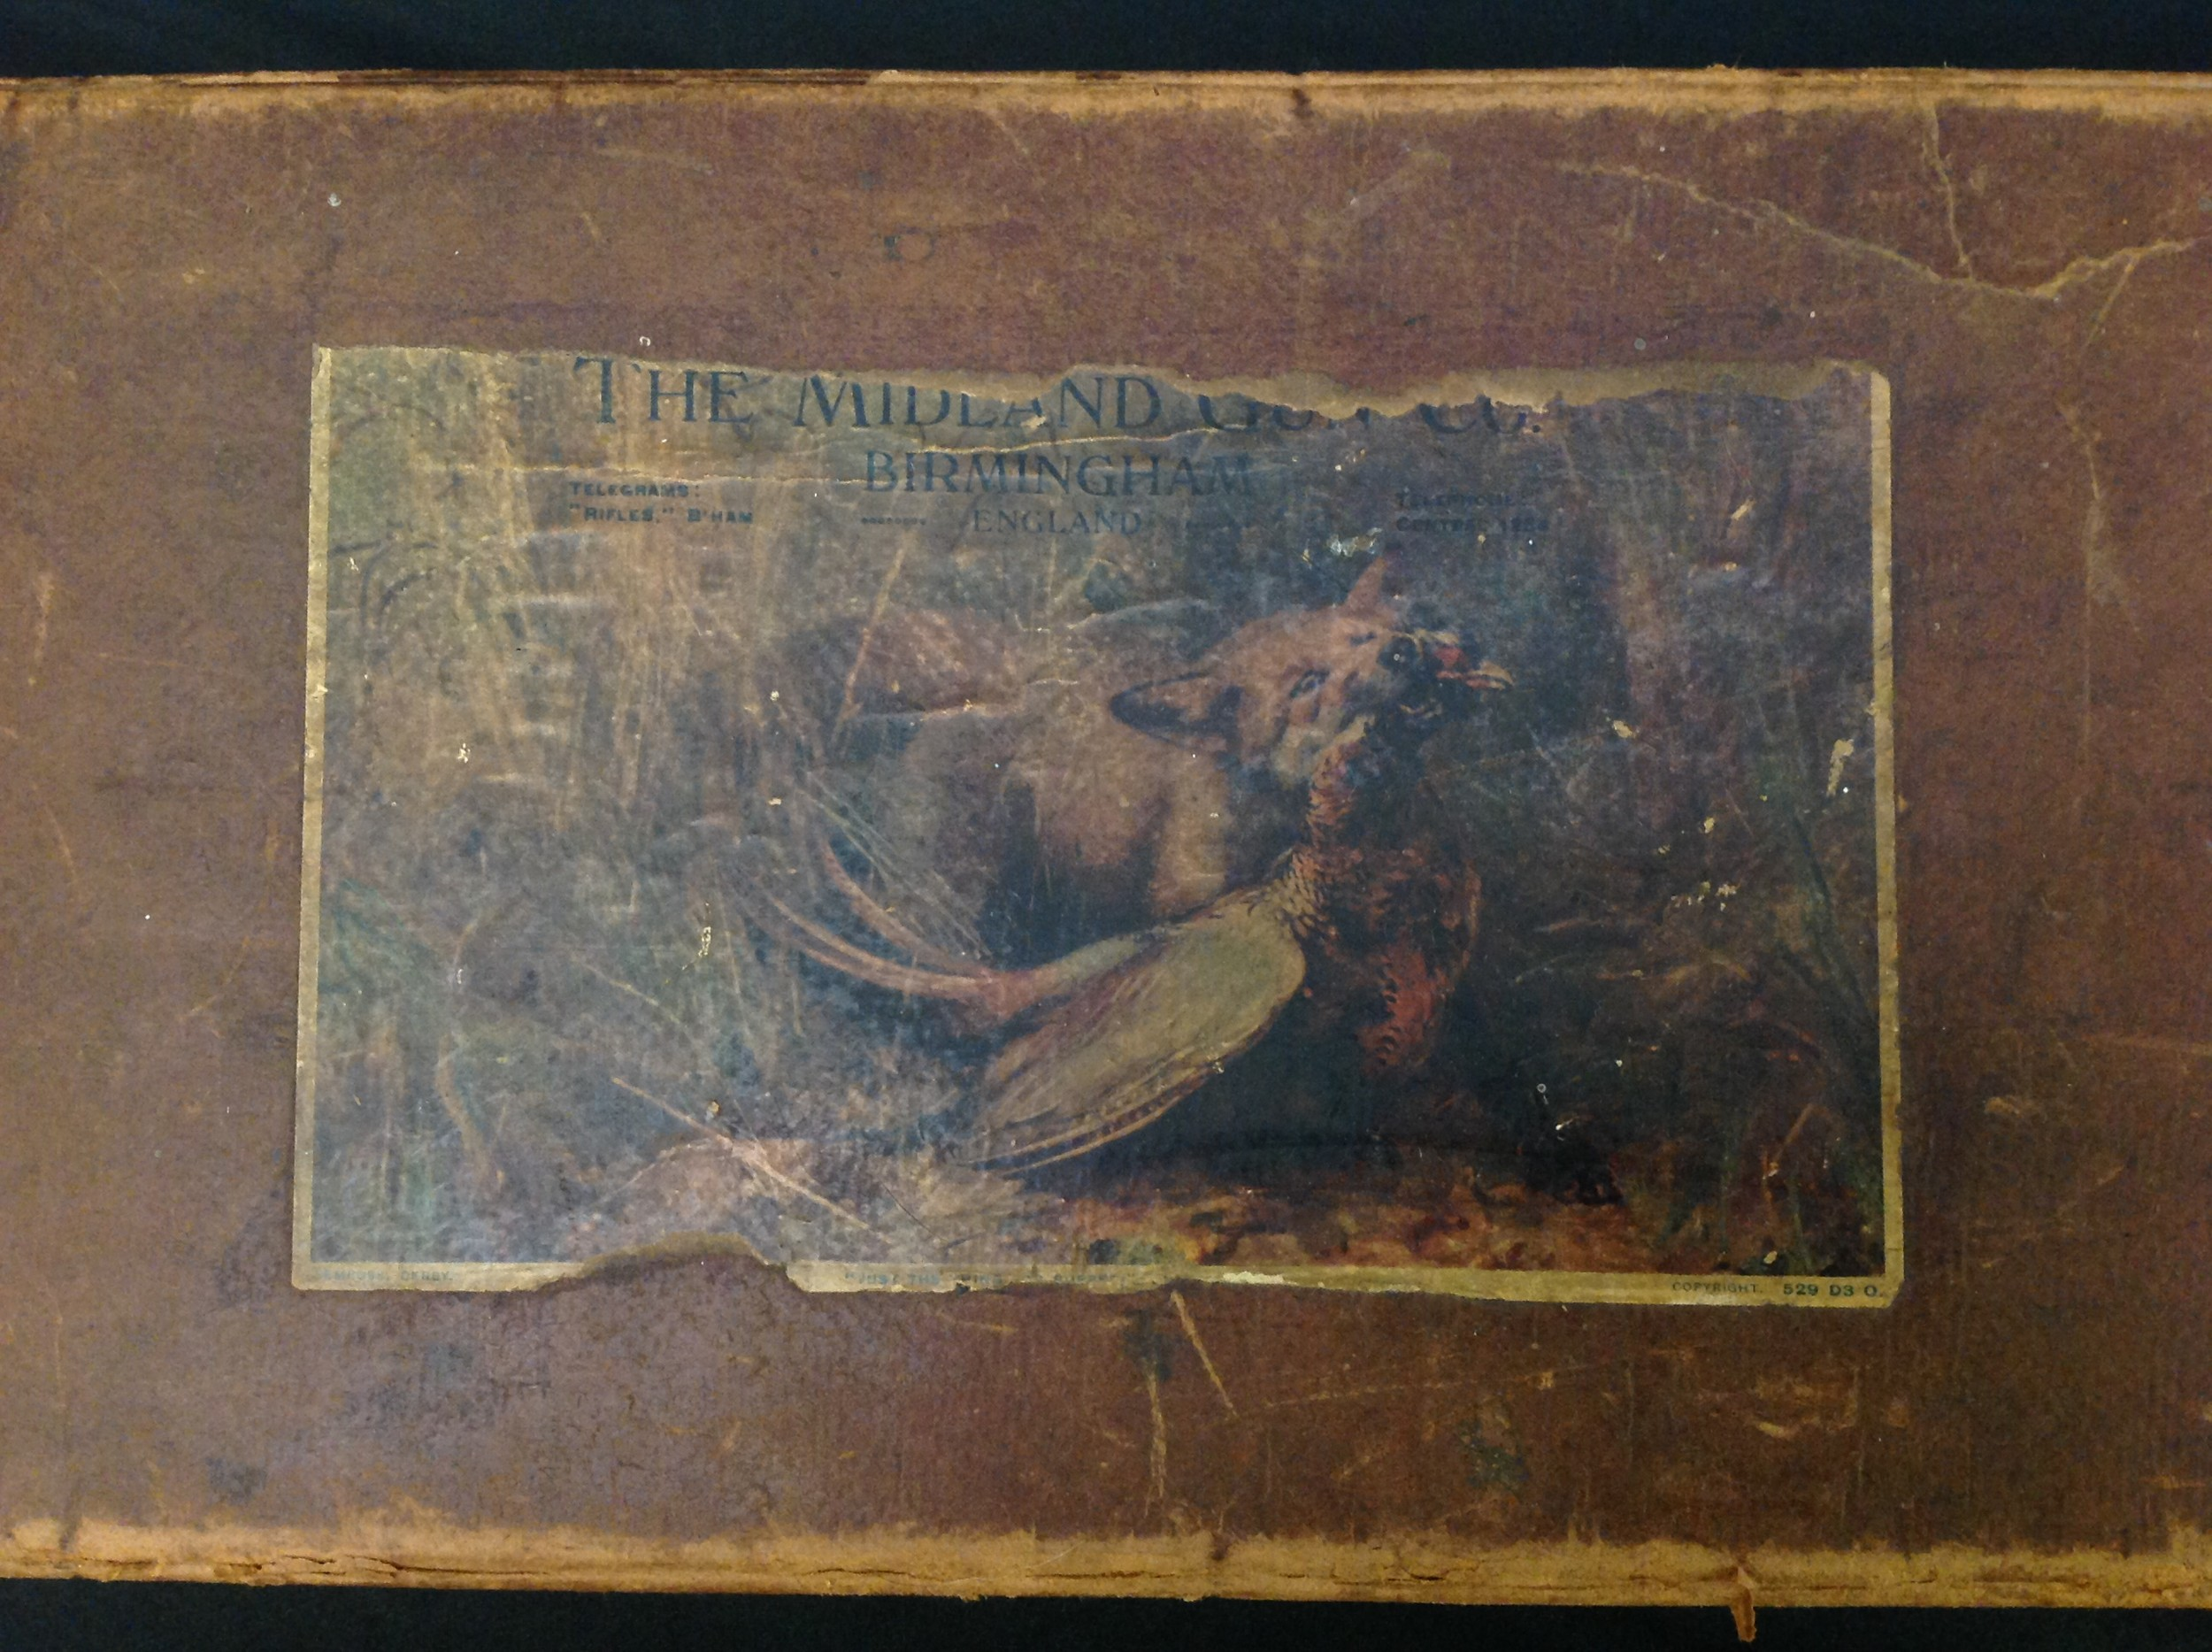 A pair of Shotgun Boxes: an original cardboard box of issue by the Midland Gun Company, Birmingham - Image 6 of 9